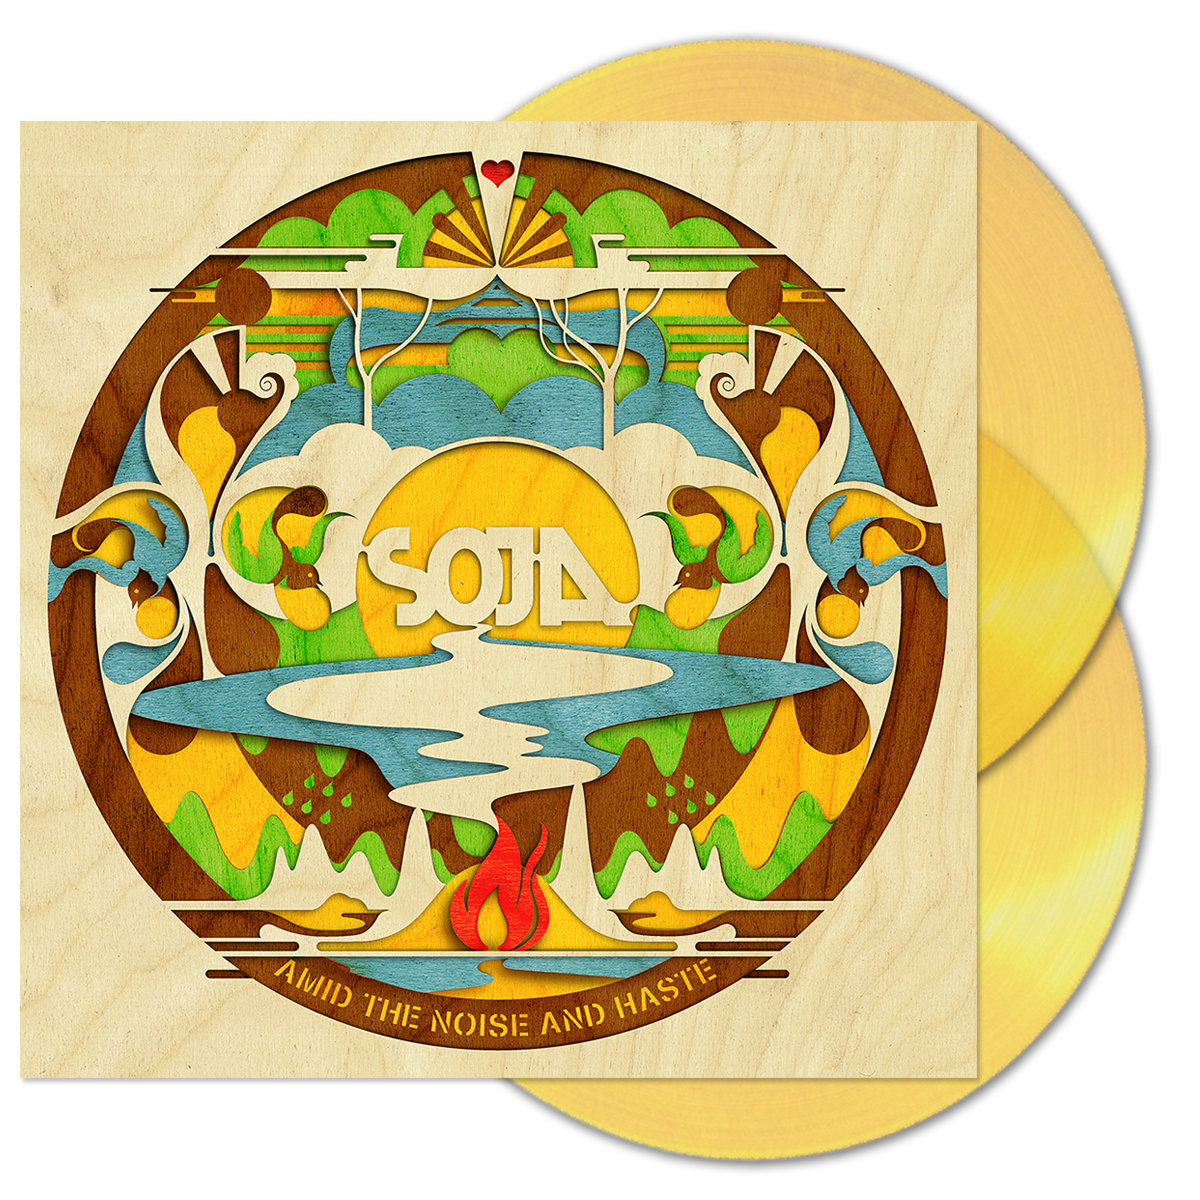 SOJA Amid the Noise and Haste 2-LP Gold Vinyl + Download